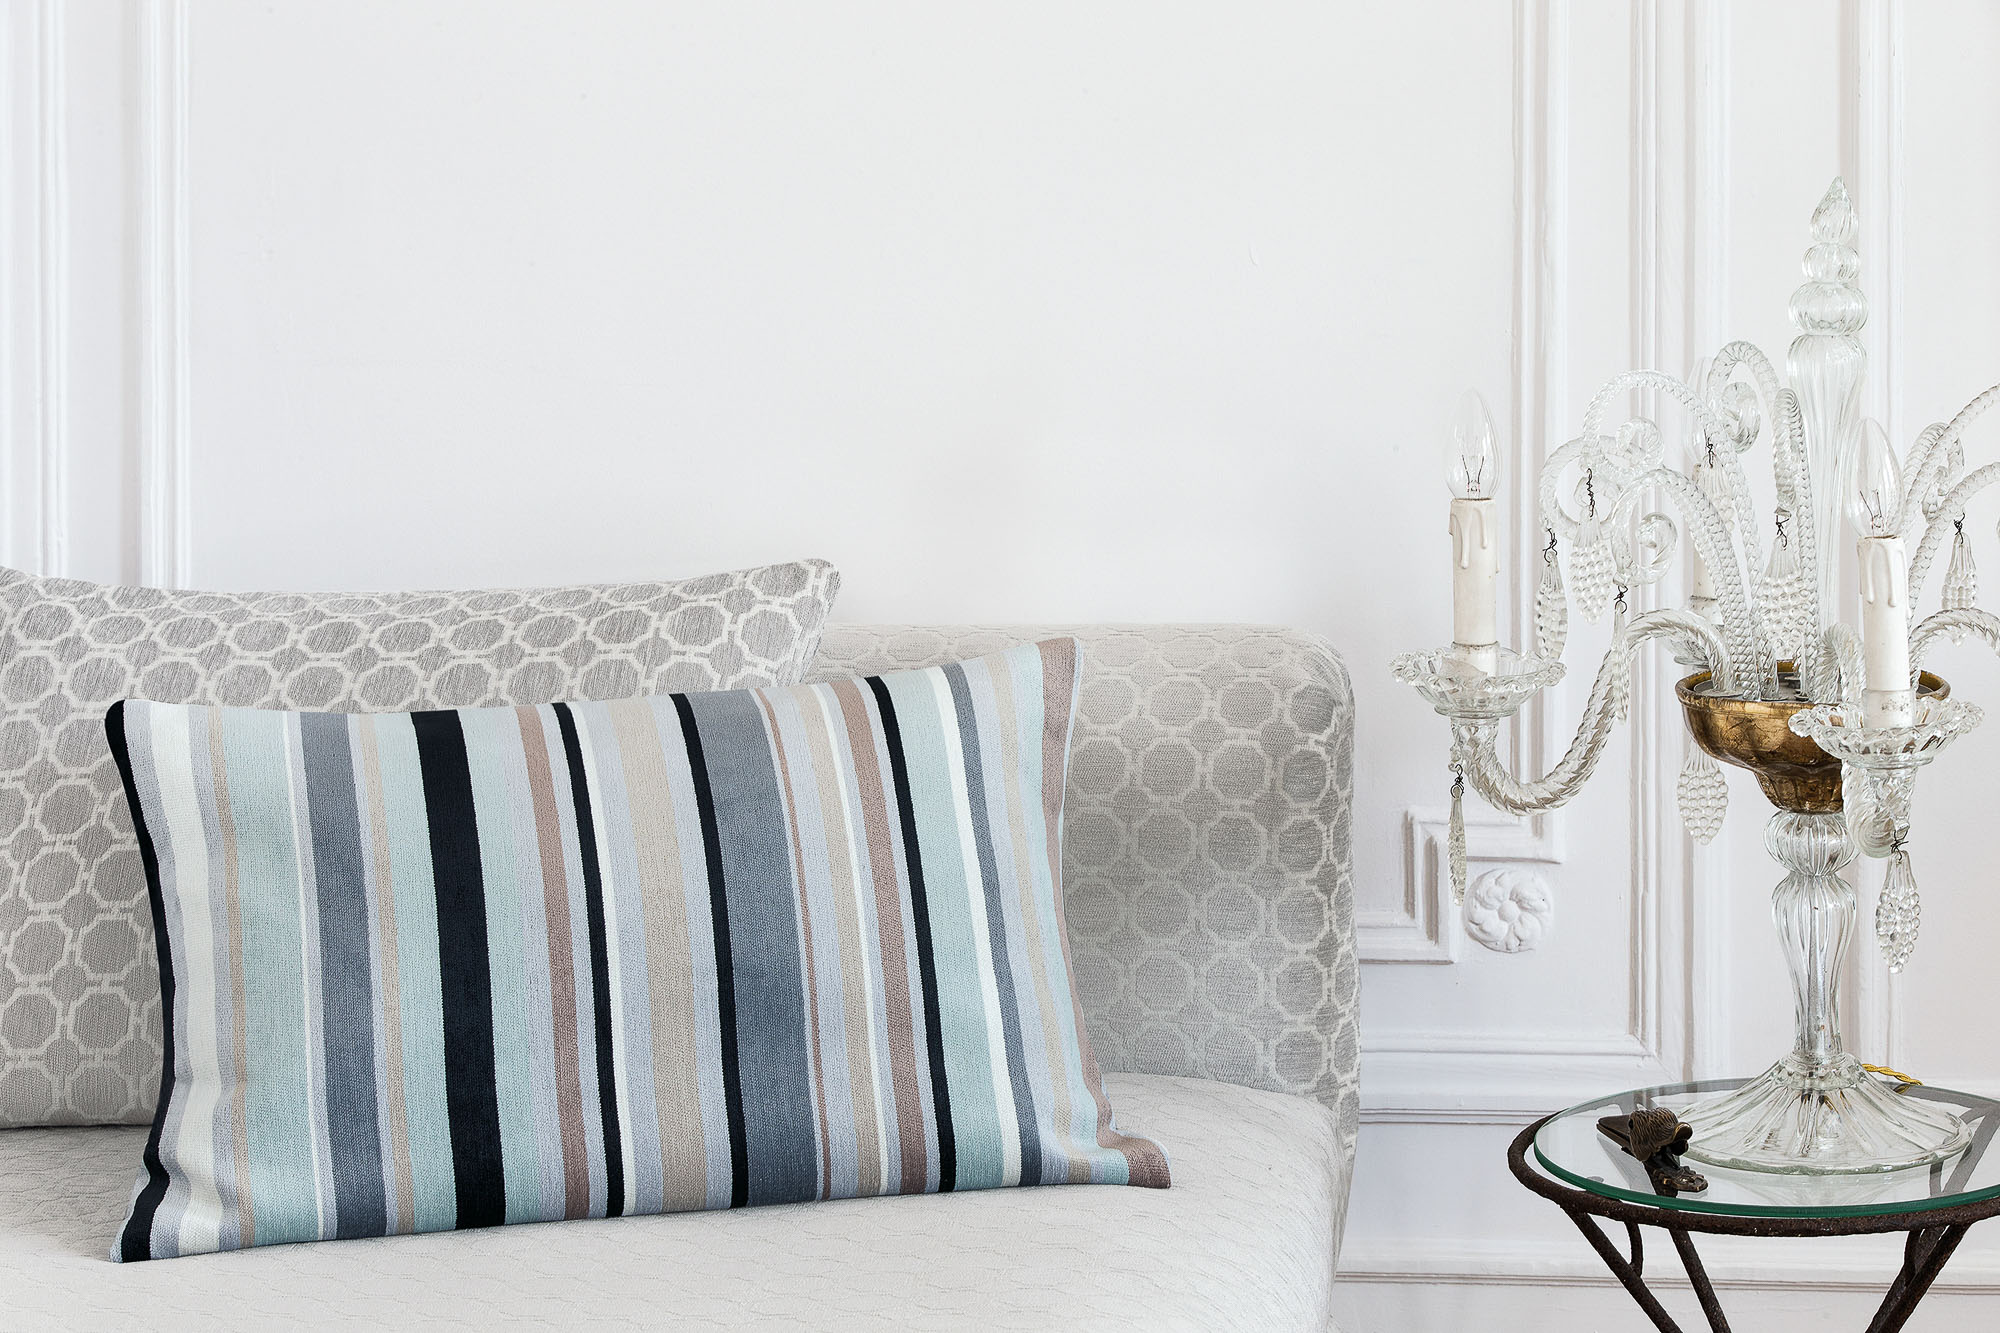 Durable upholstery for sofas and cushions